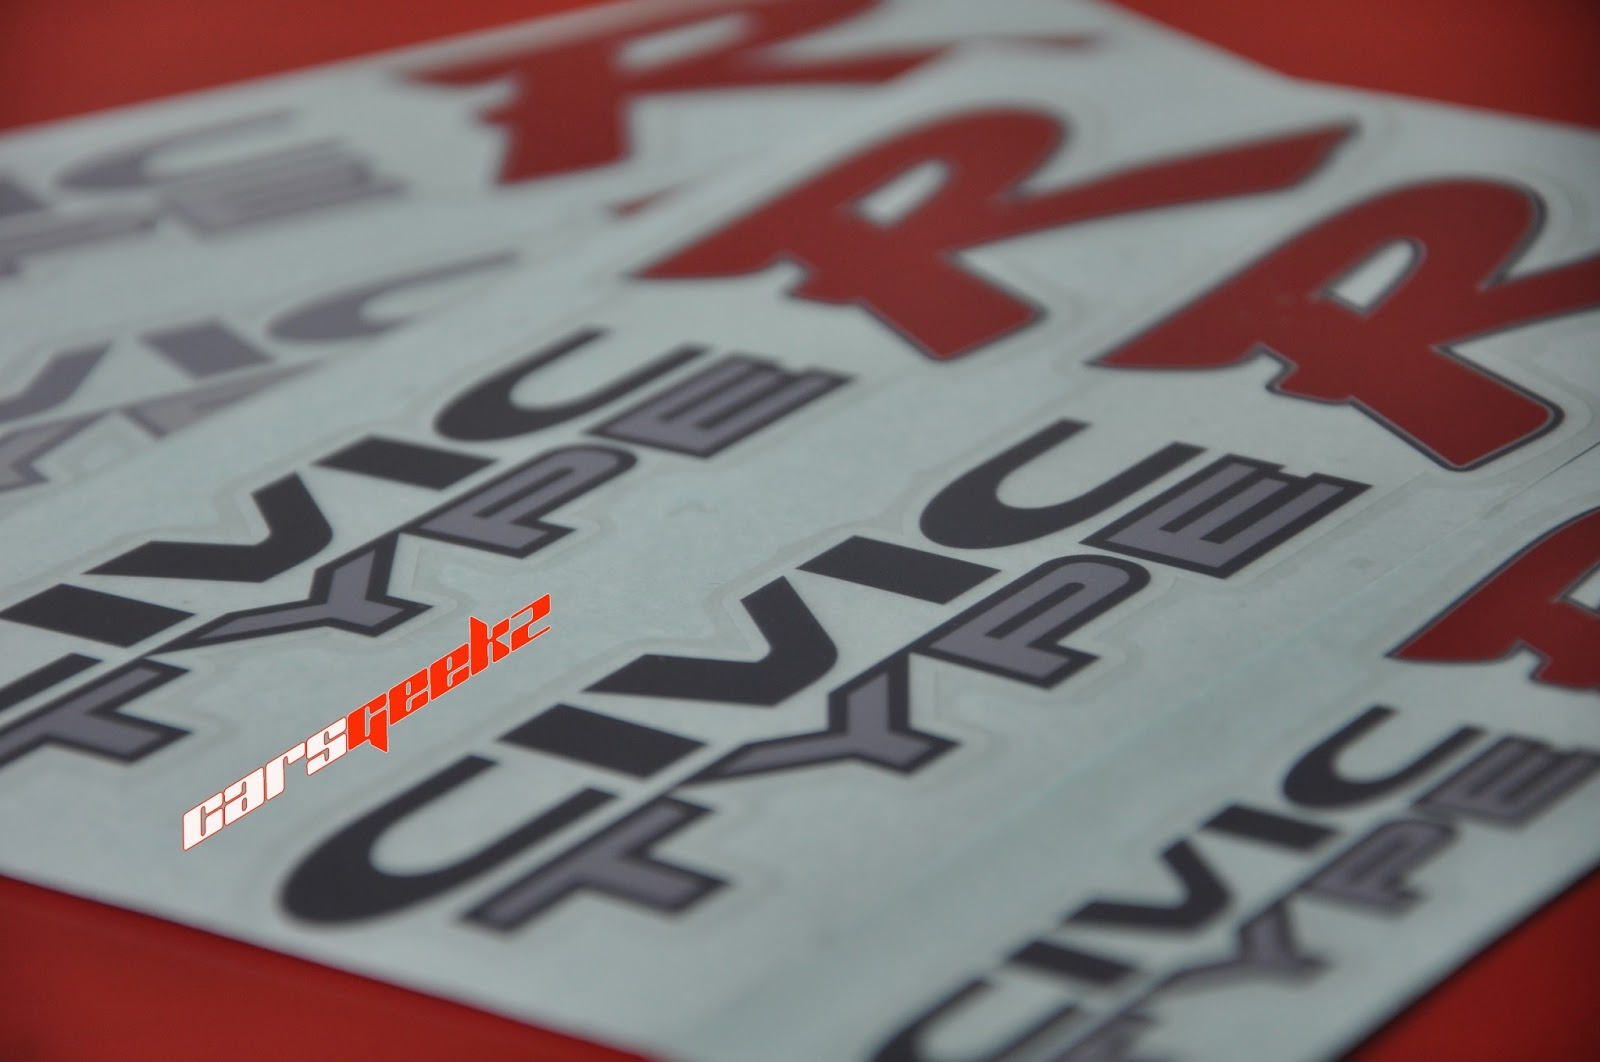 civic type r decals stickers 1